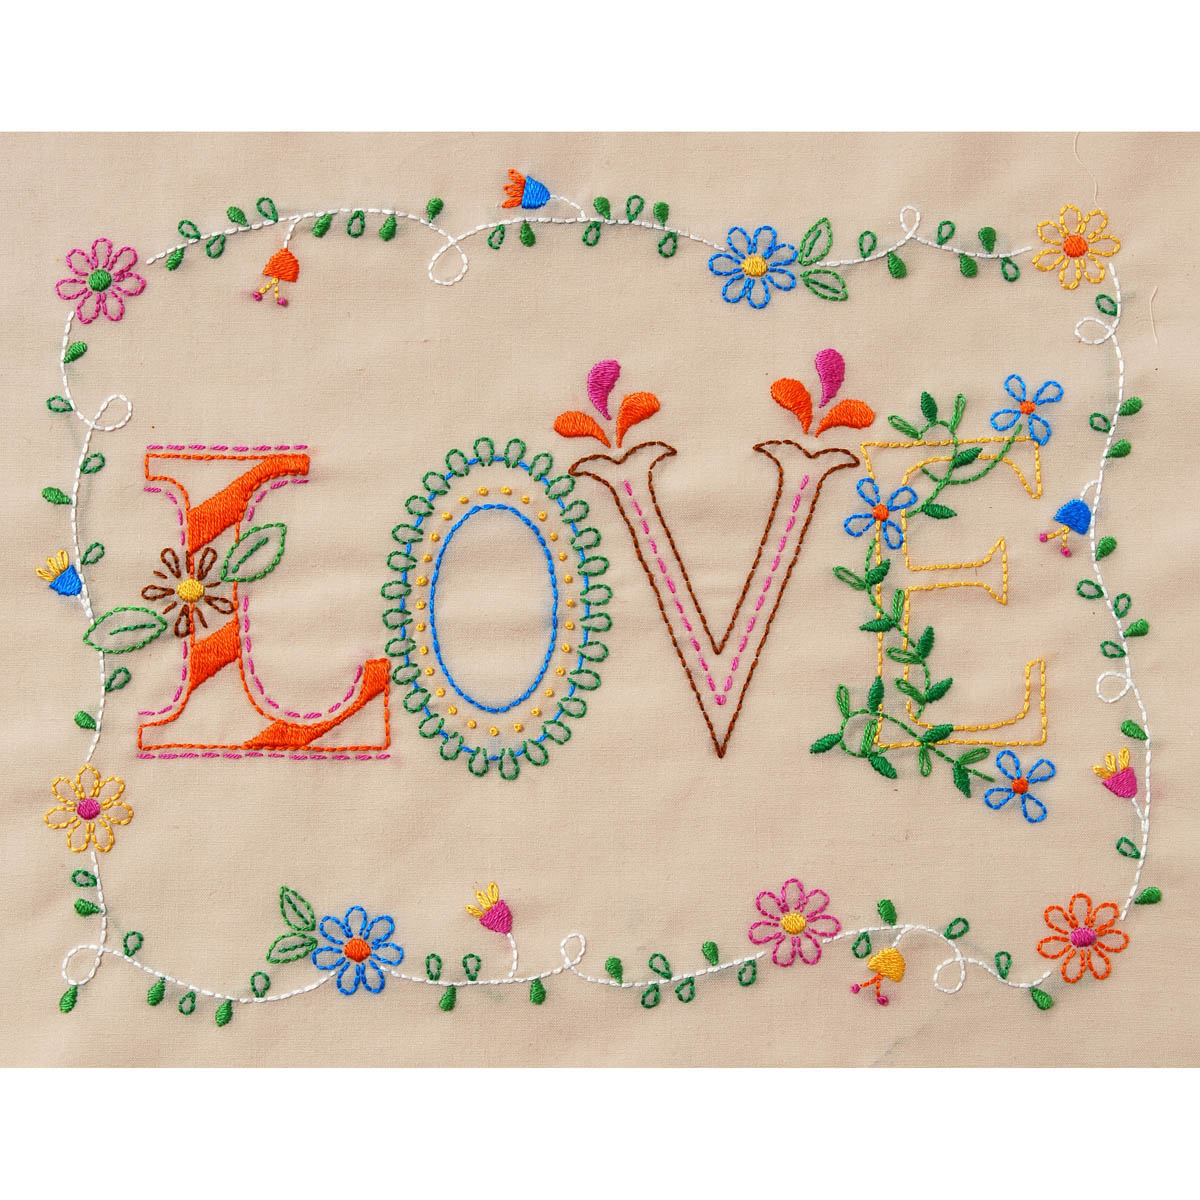 Bucilla ® Stamped Embroidery - Picture Kits - Love